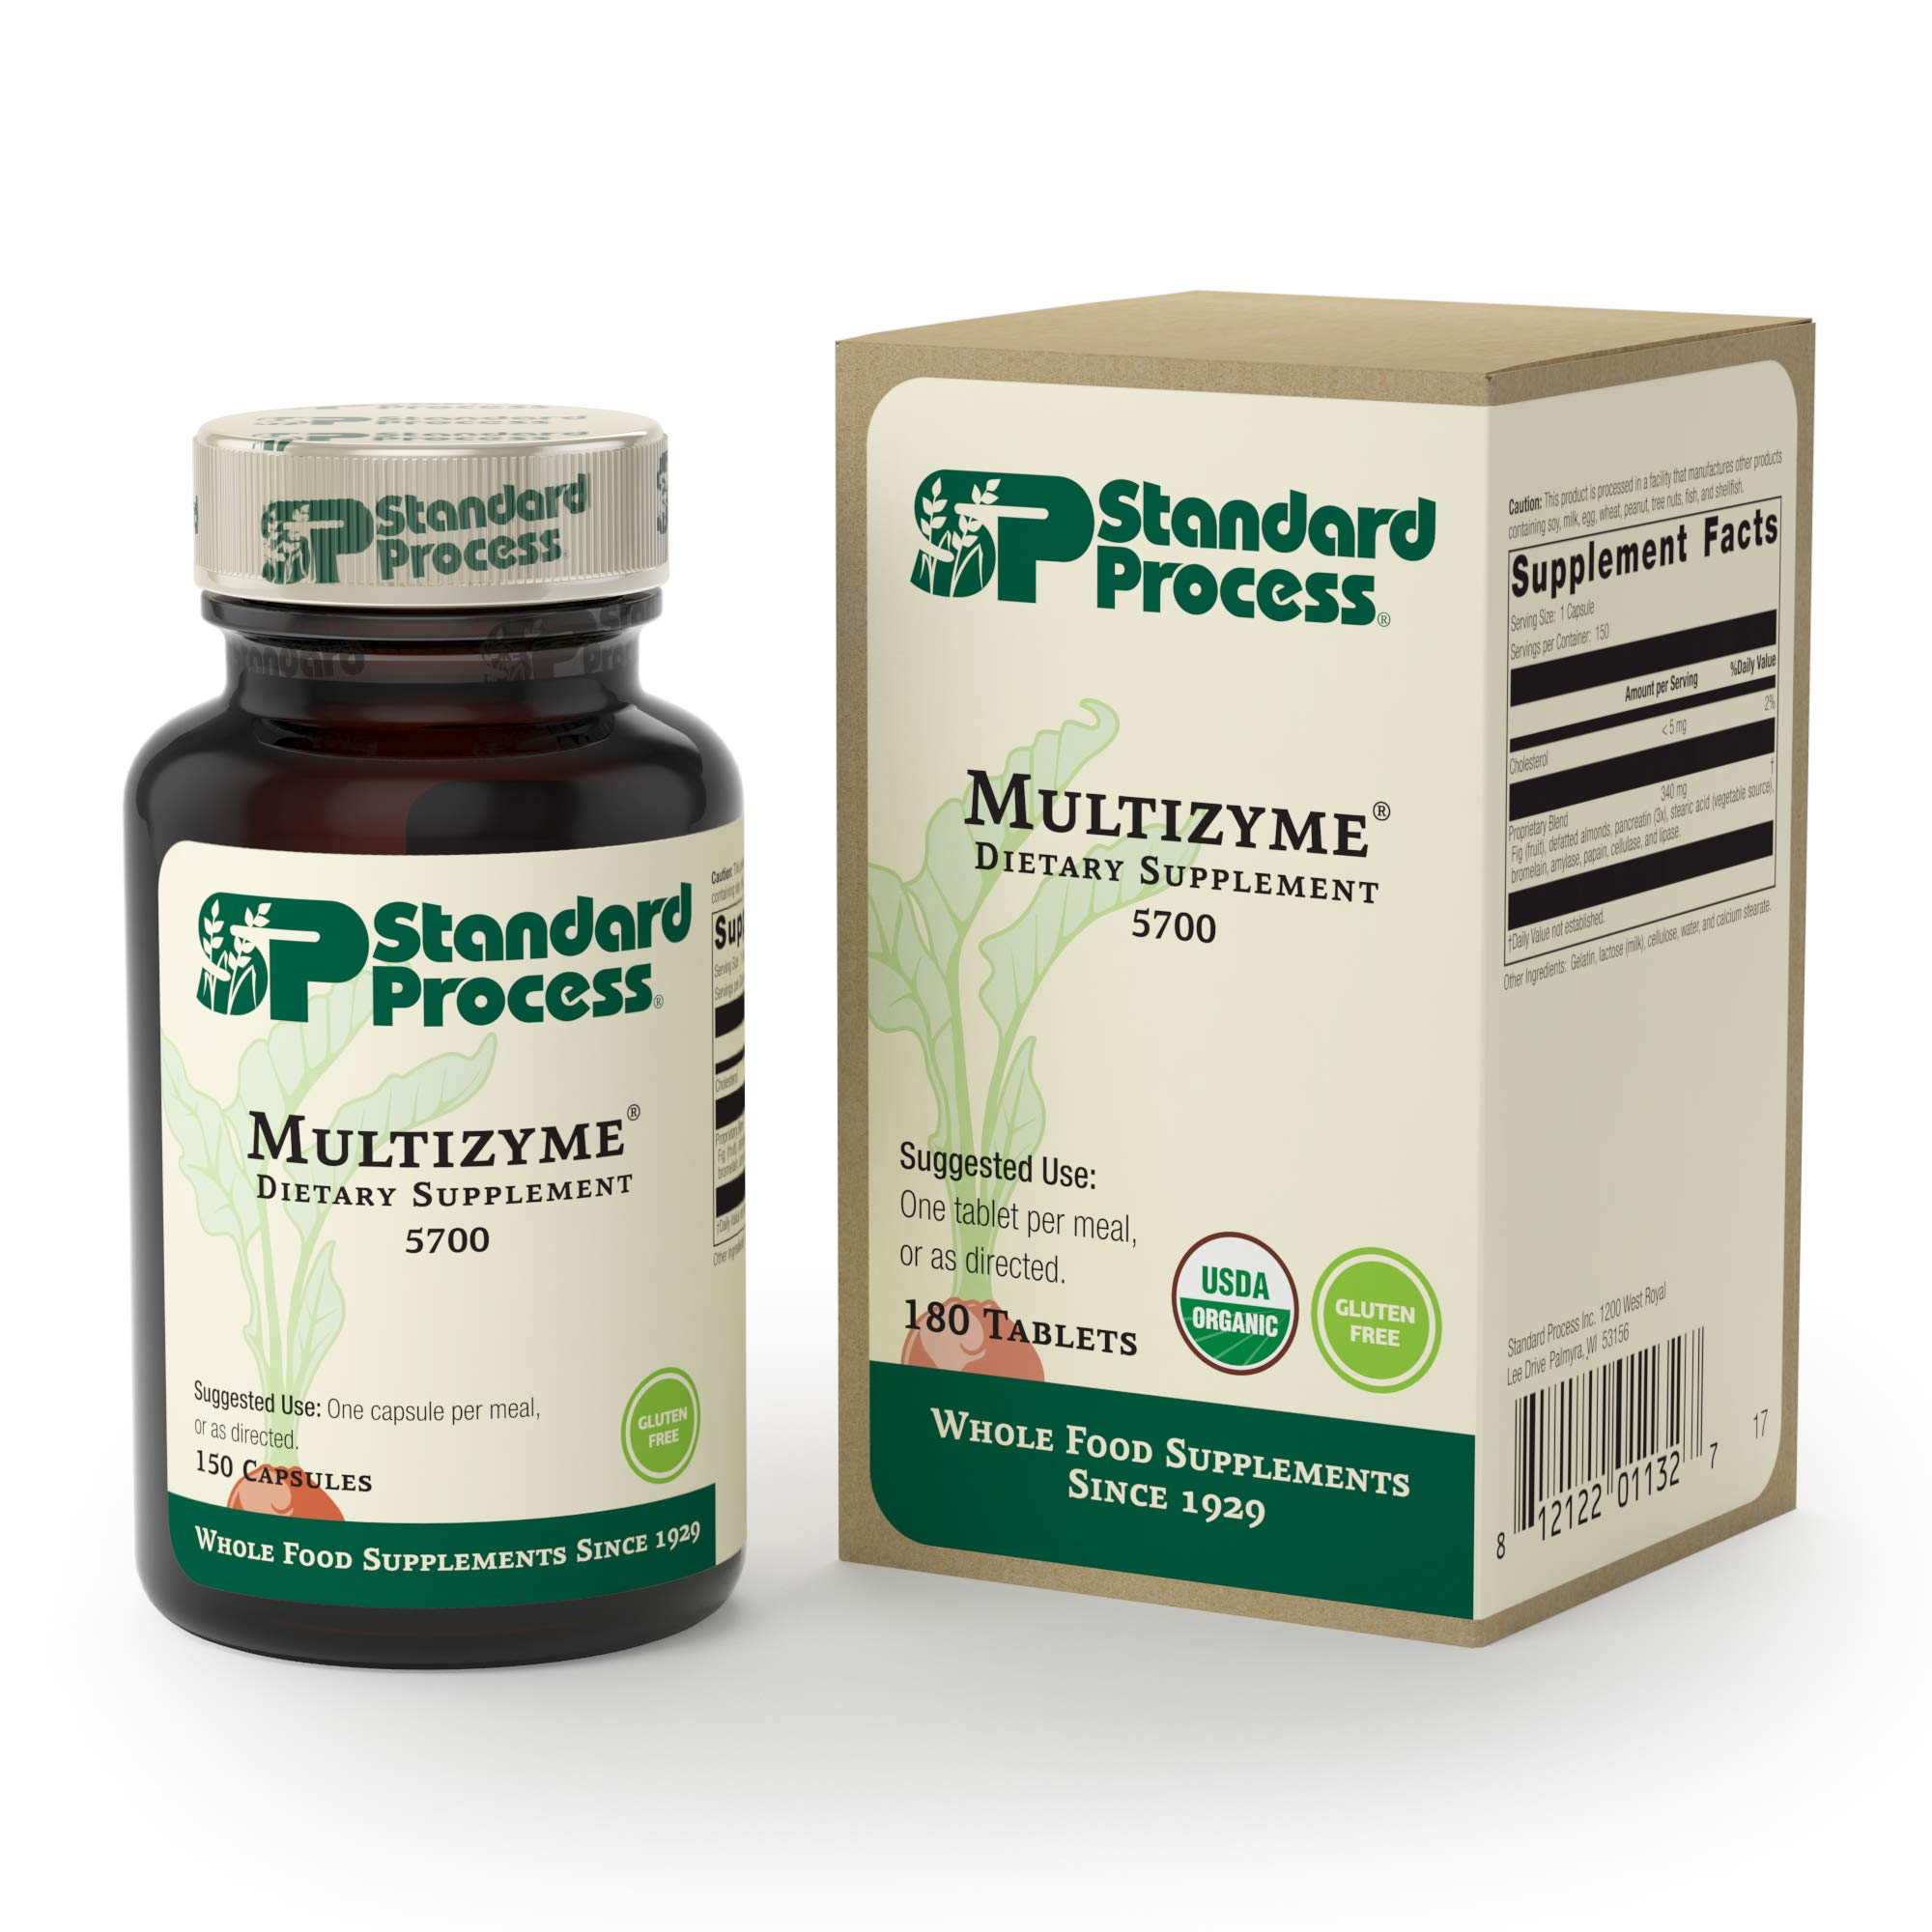 Standard Process Multizyme Digestion And Pancreatic Function